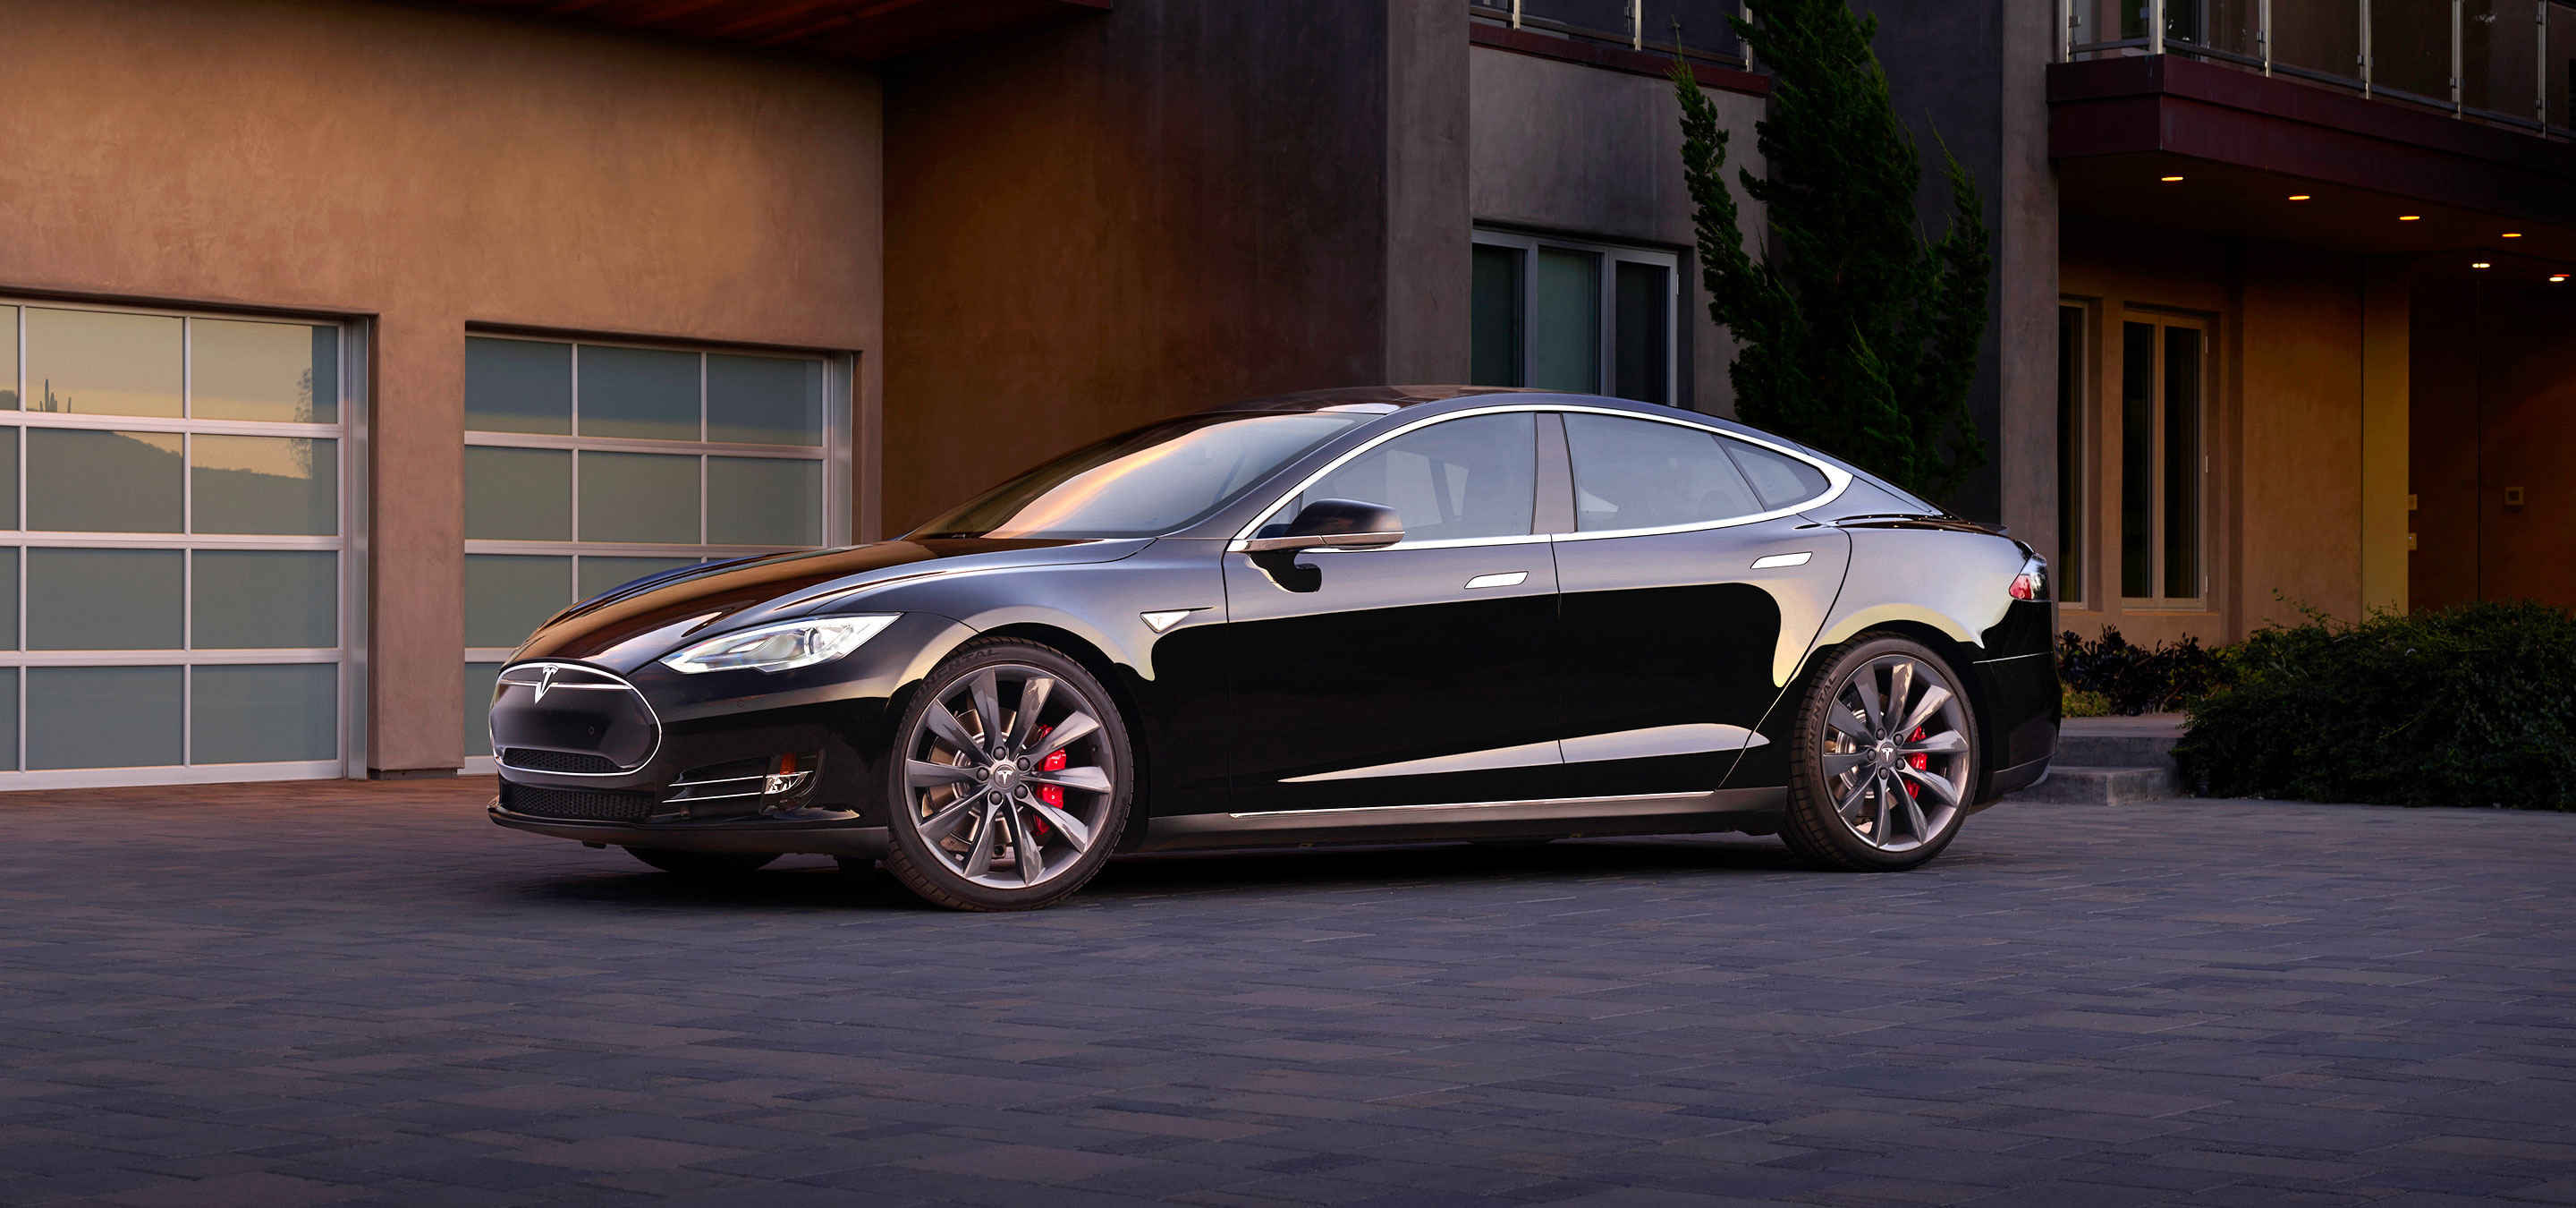 Telsa Model S lateral